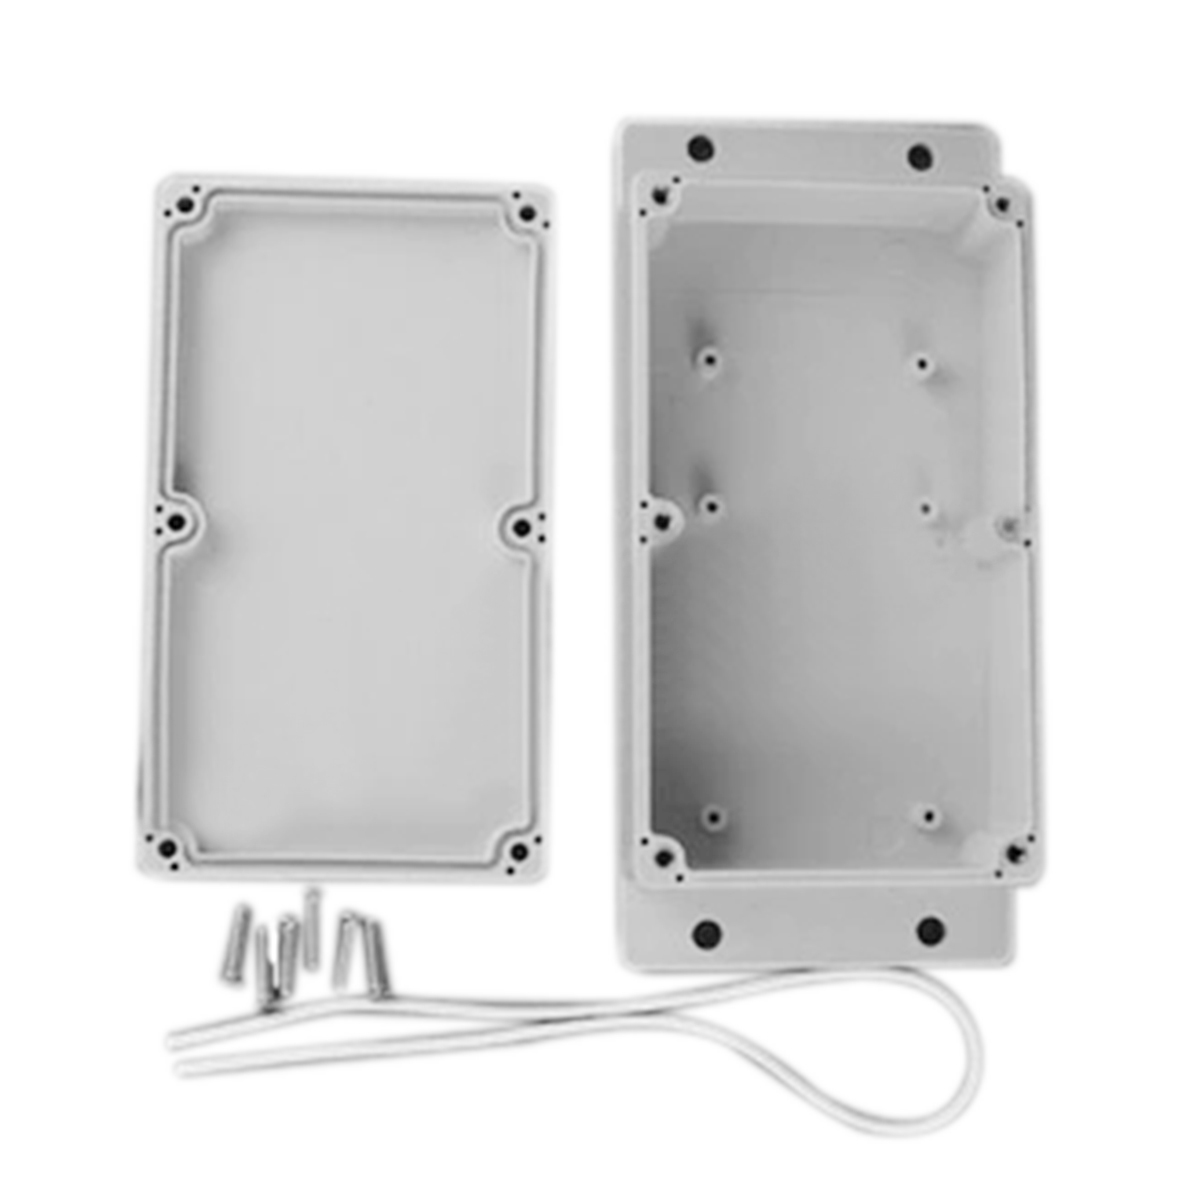 White Waterproof Power Junction Box Plastic Electronic Project Instrument Enclosure Case 158mmx90mmx46mm liberty project power case